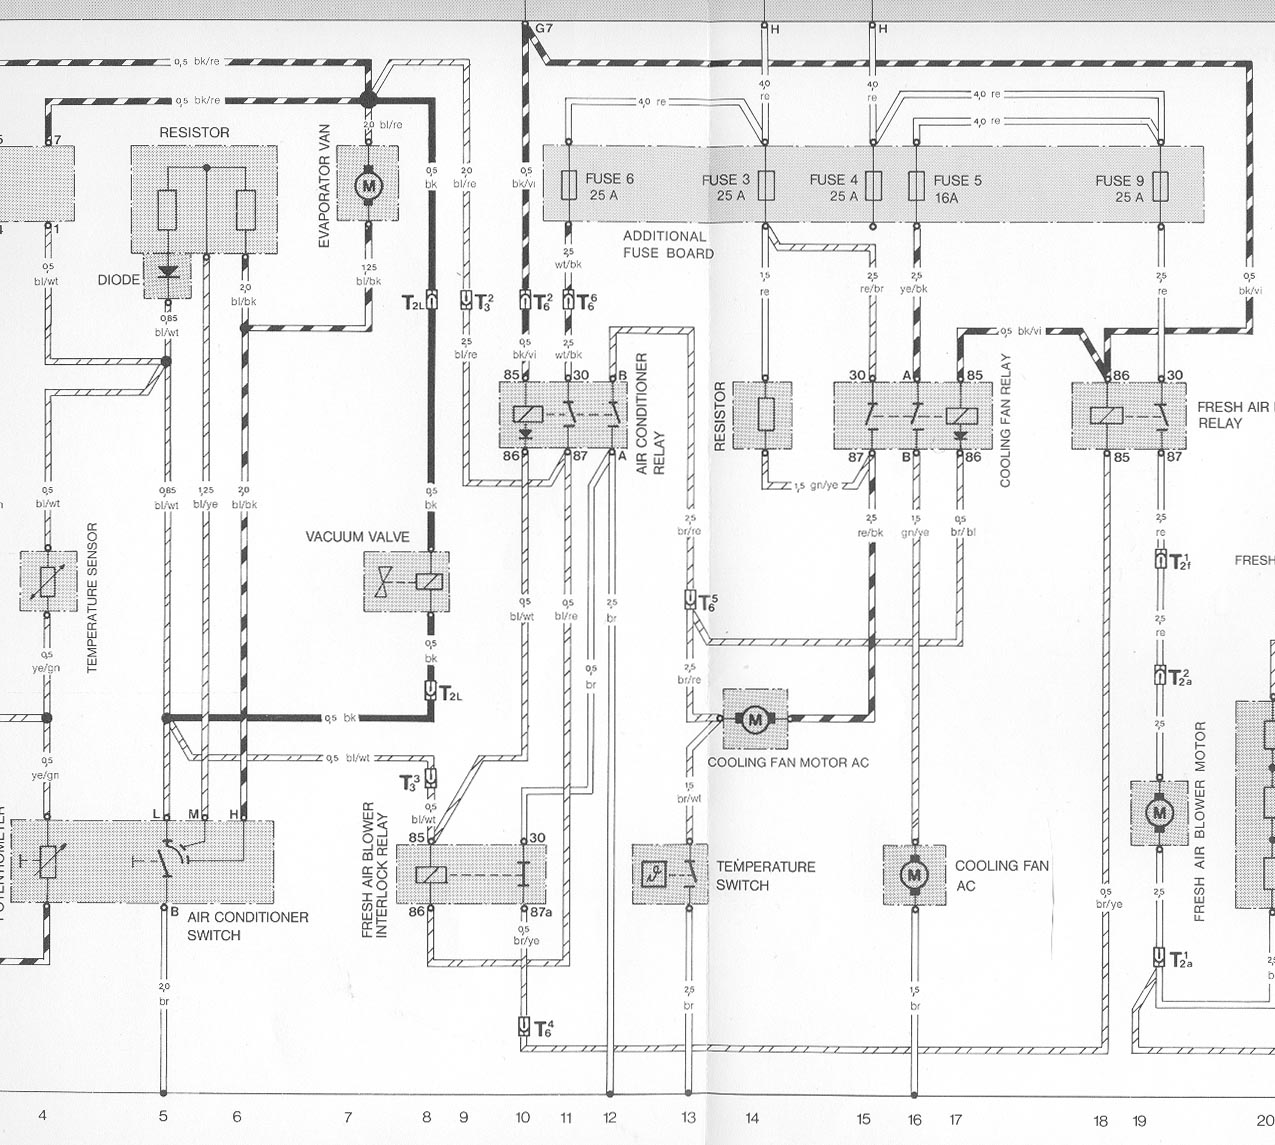 early_cooling_fan_with_ac cooling fan operation and troubleshooting 1984 porsche 944 fuse box diagram at reclaimingppi.co